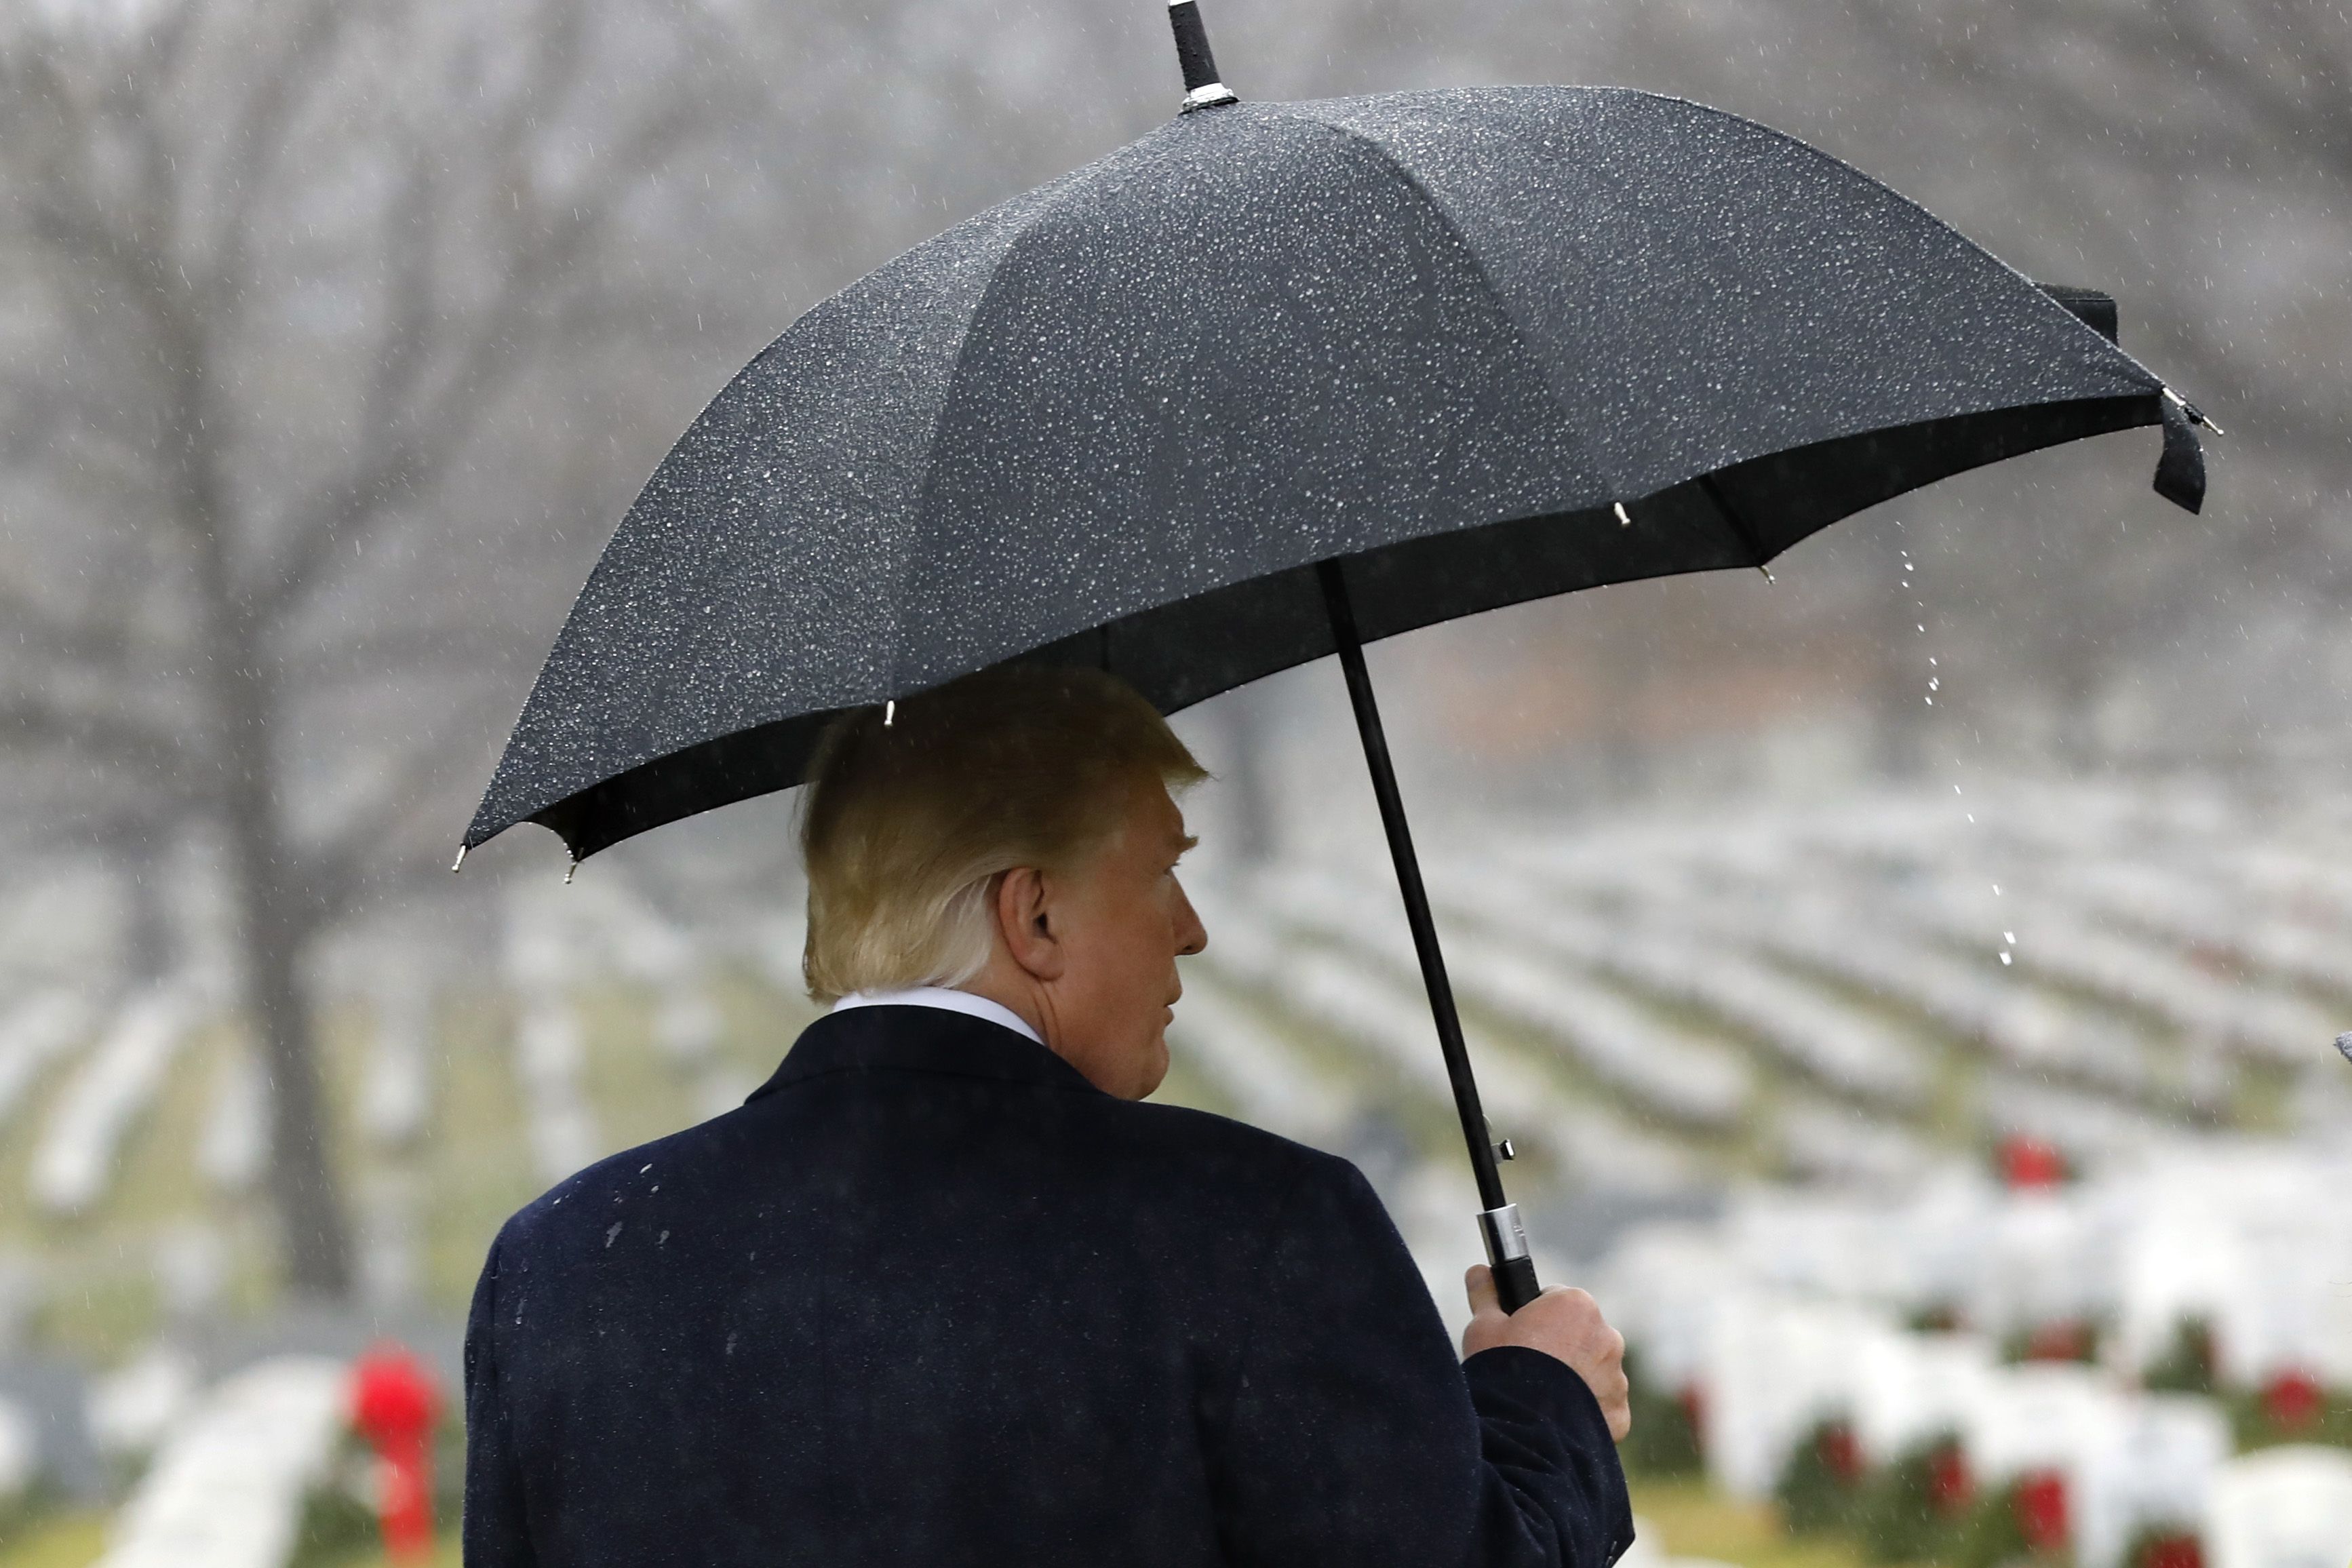 President Donald Trump visits Section 60 at Arlington National Cemetery on December 15, 2018. Trump is visiting the cemetery for the annual wreath-laying ceremony. (Yuri Gripas-Pool/Getty Images)